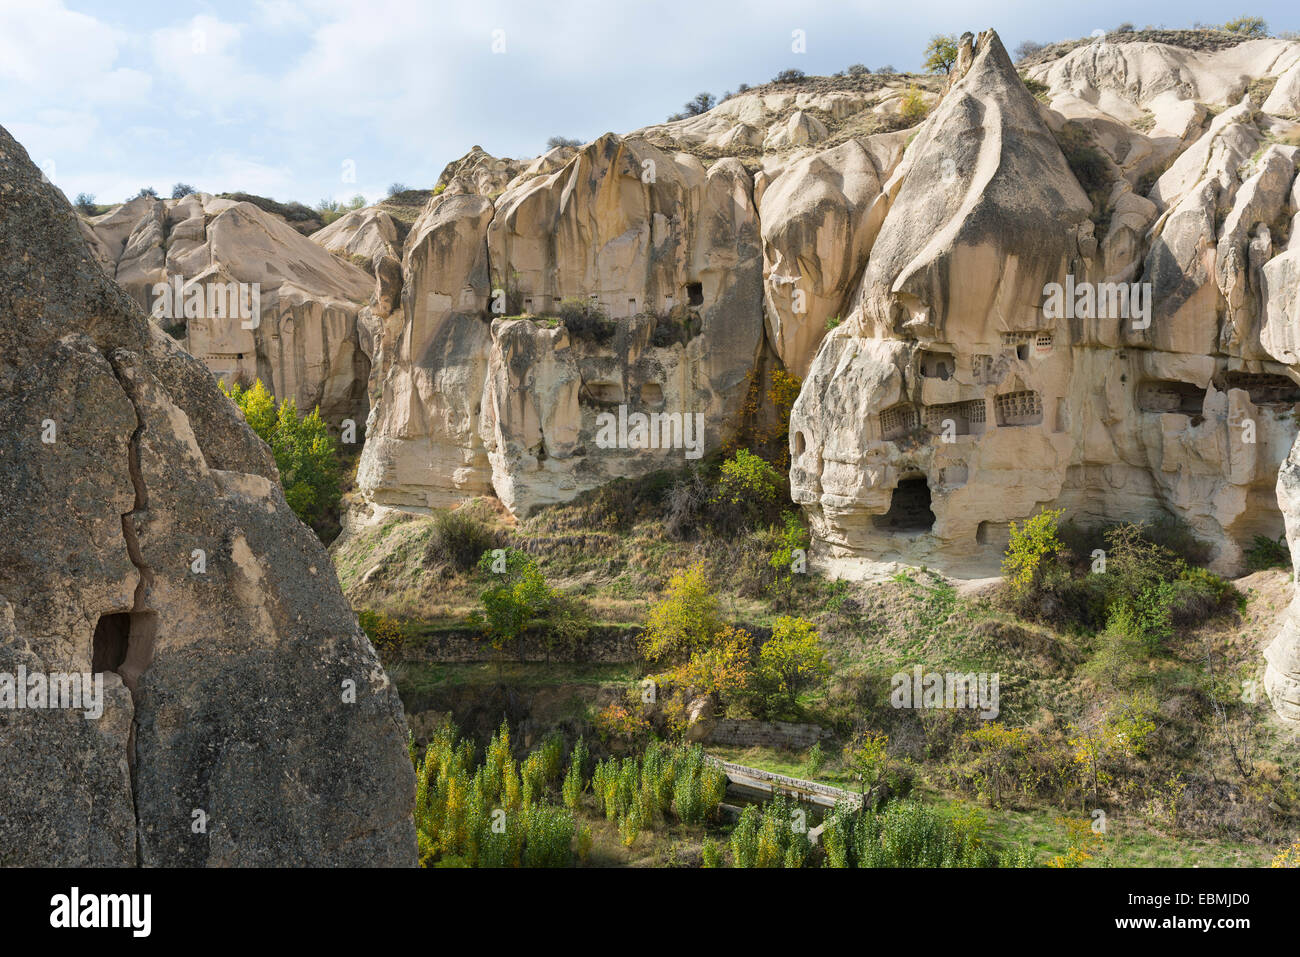 Cave dwellings in the Göreme Open Air Museum, UNESCO World Heritage Site, Cappadocia, Nevsehir Province, Turkey - Stock Image